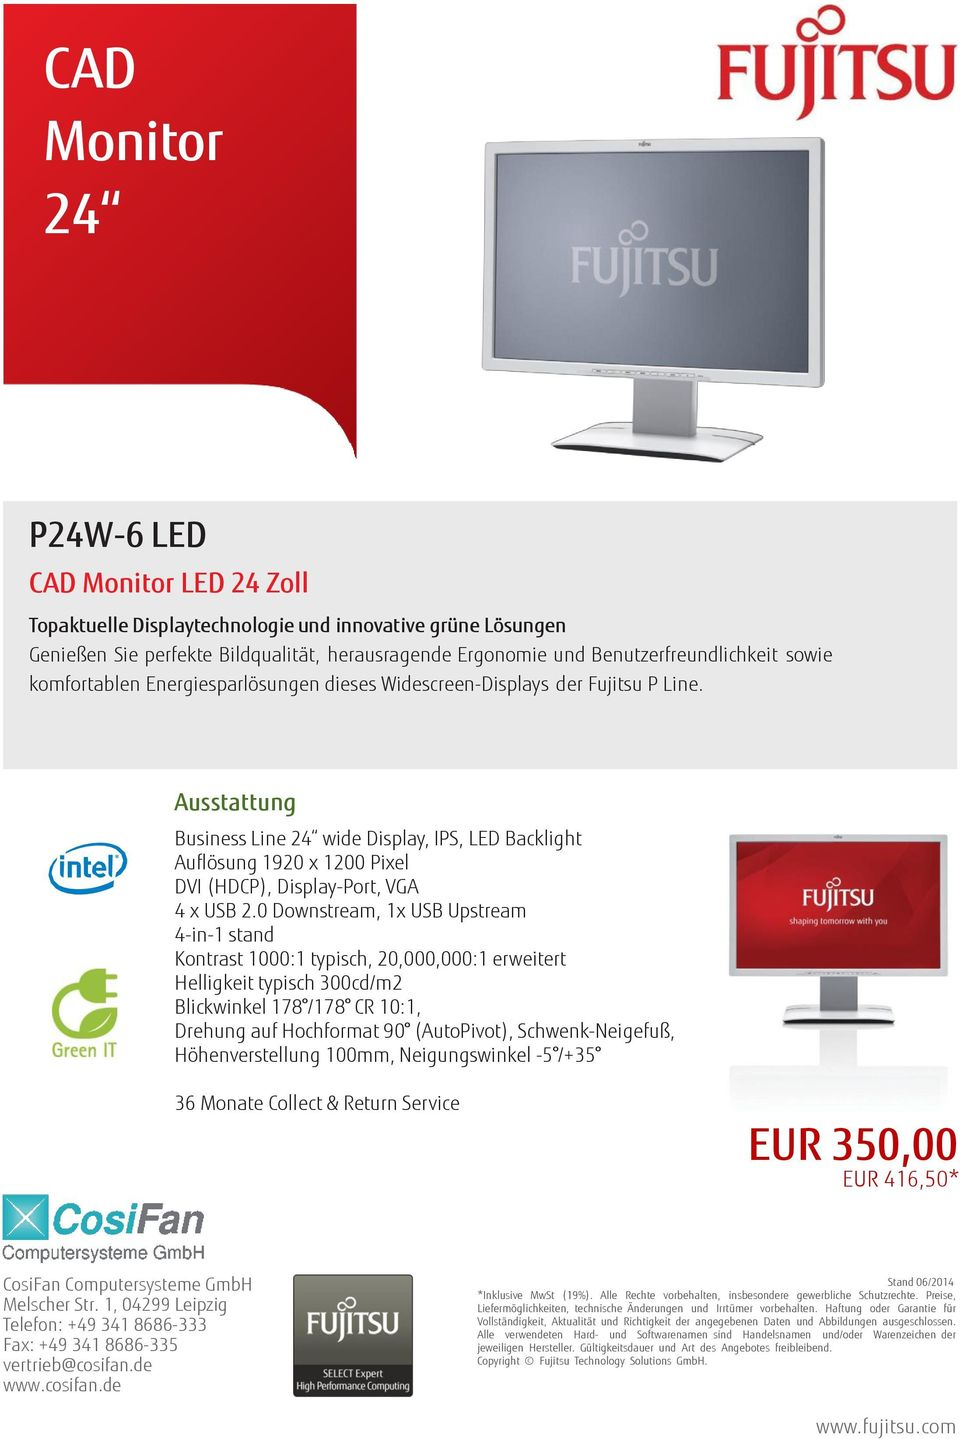 Business Line 24 wide Display, IPS, LED Backlight Auflösung 1920 x 1200 Pixel DVI (HDCP), Display-Port, VGA 4 x USB 2.